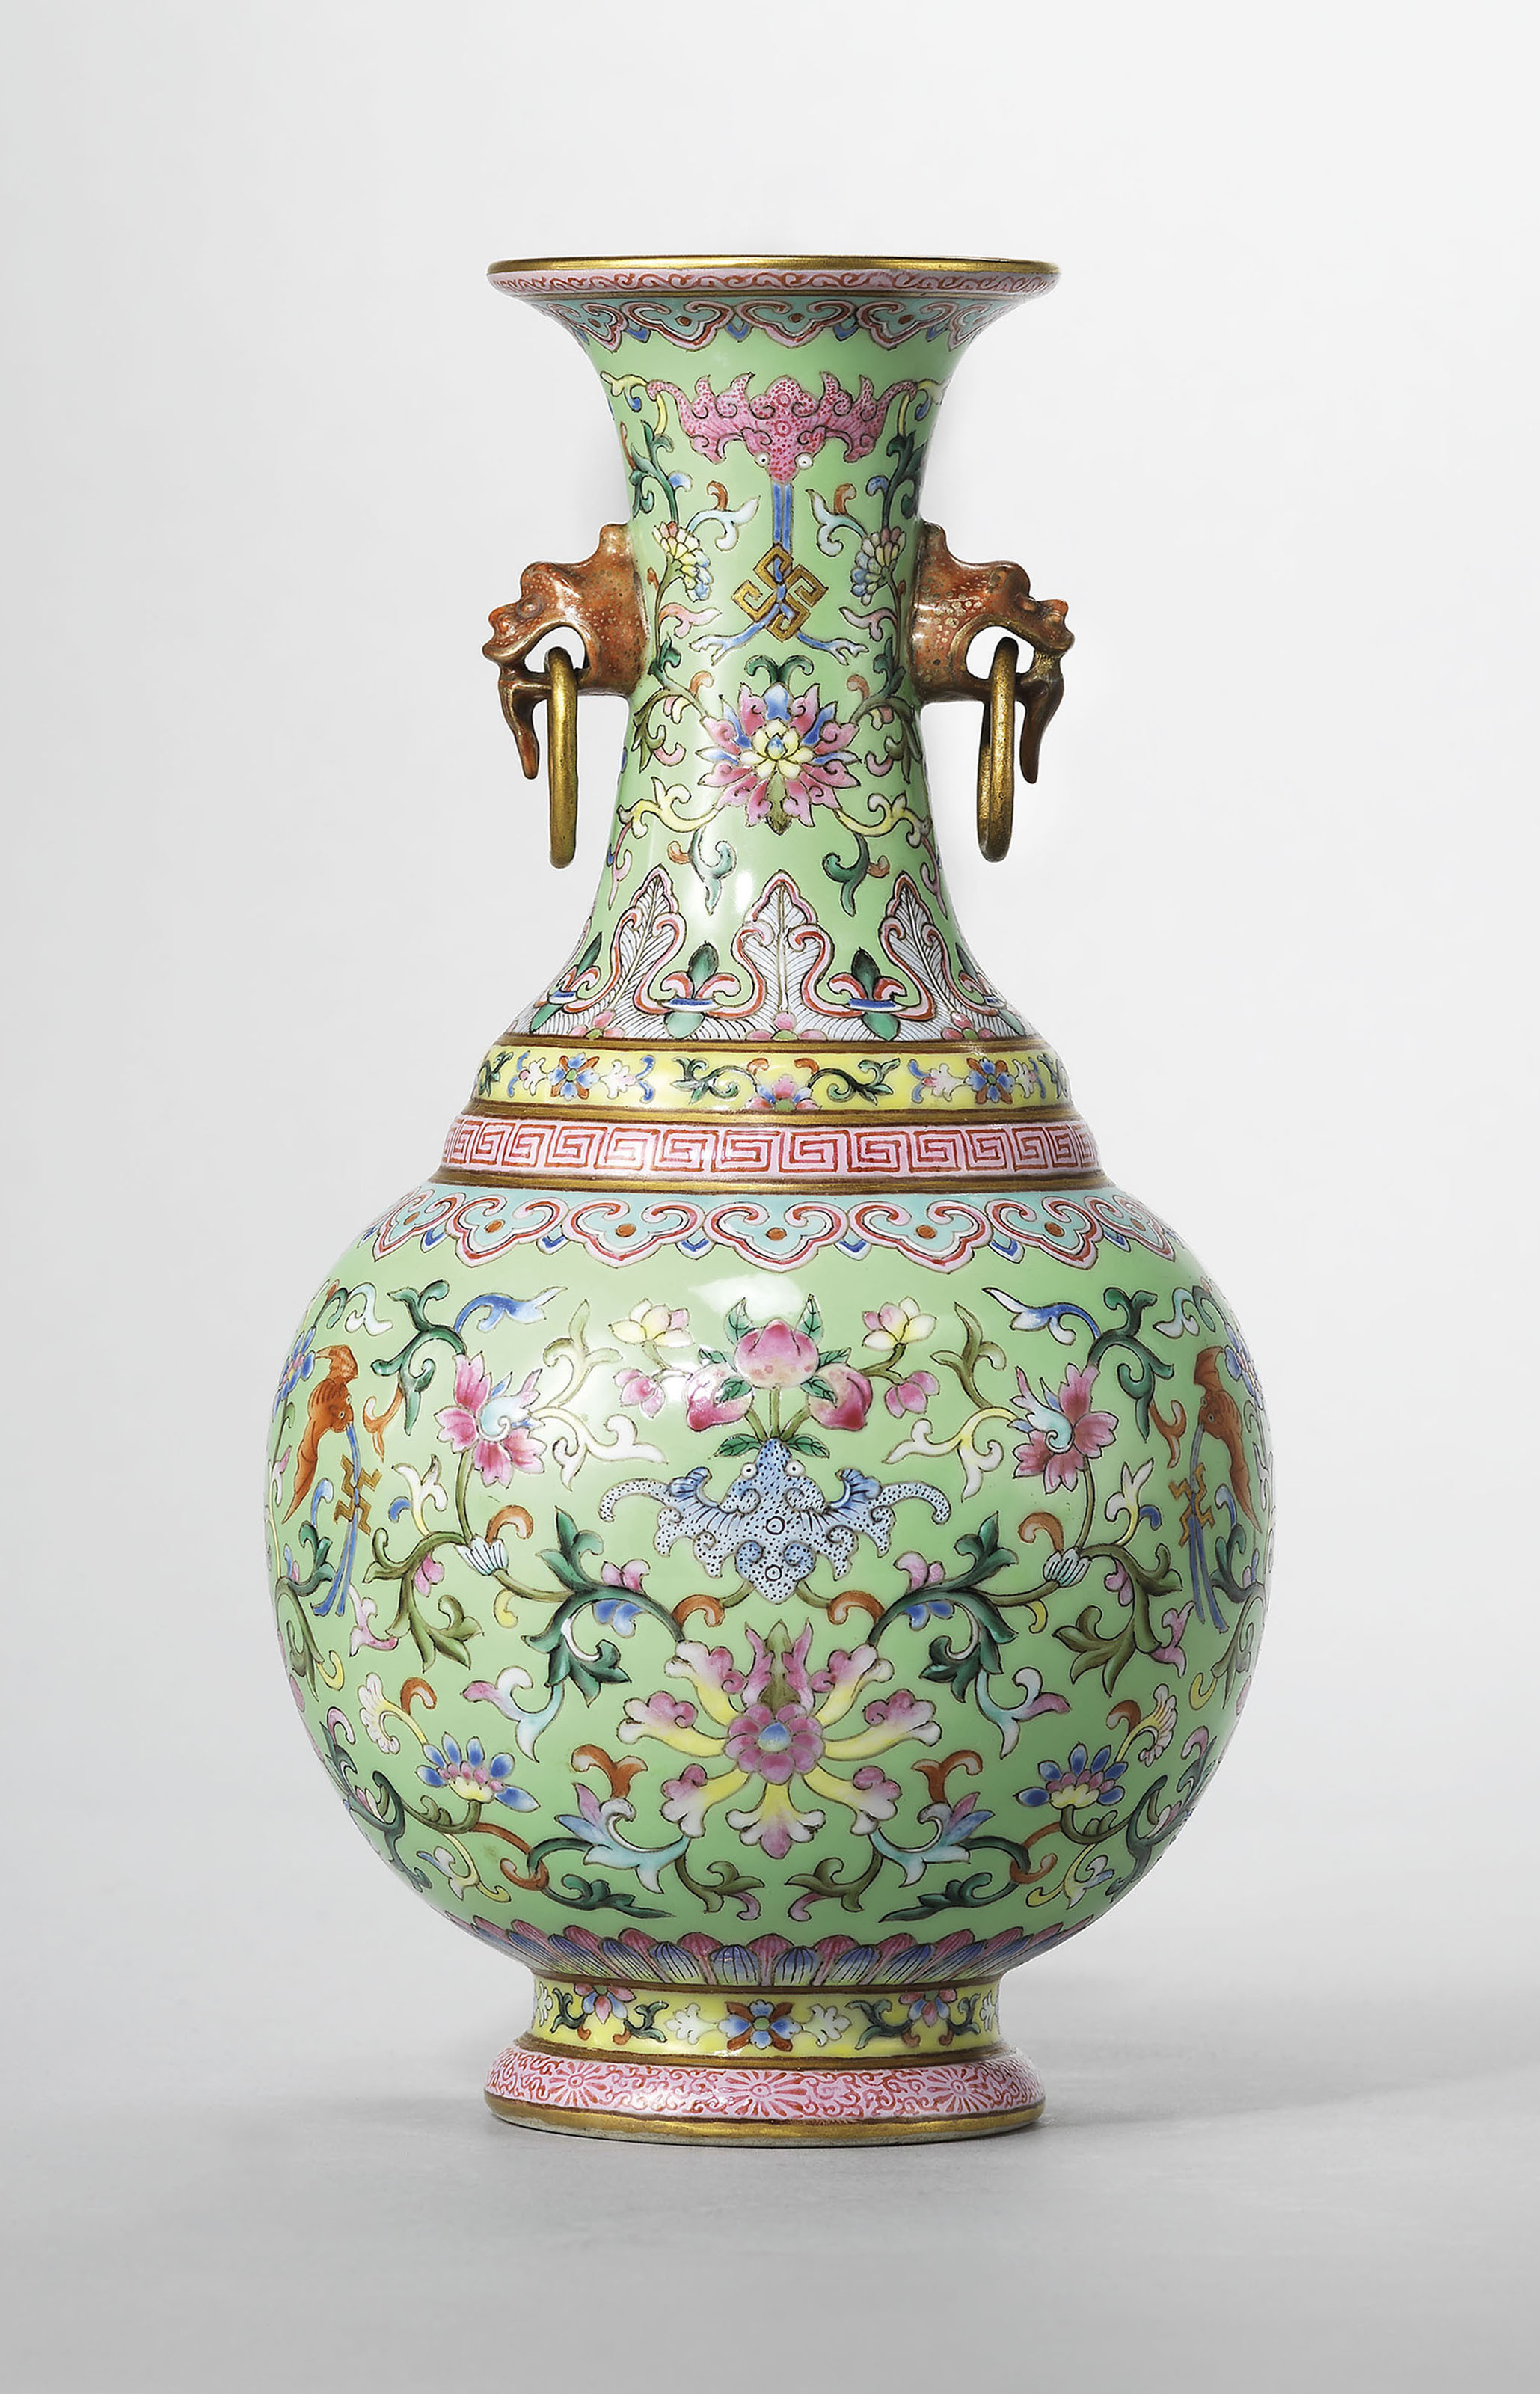 18 attractive Handmade Ceramic Vases for Sale 2021 free download handmade ceramic vases for sale of a guide to the symbolism of flowers on chinese ceramics christies throughout a lime green ground famille rose twin handled vase jiaqing six character